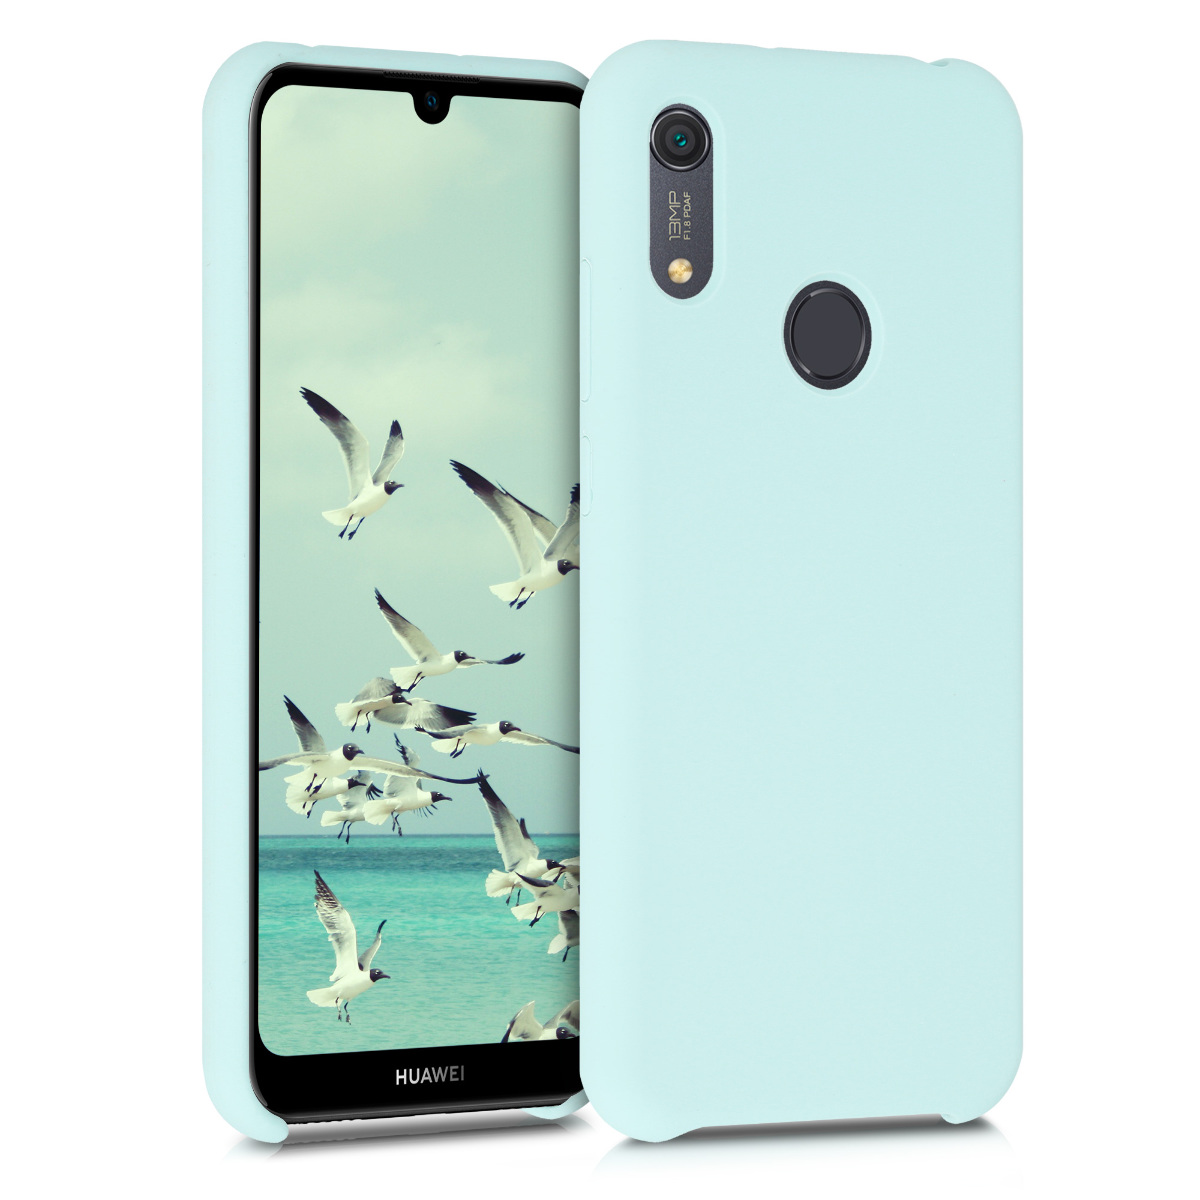 KW Θήκη Σιλικόνης Huawei Y6s 2019 - Soft Flexible Rubber Protective Cover - Mint Matte (52410.50)